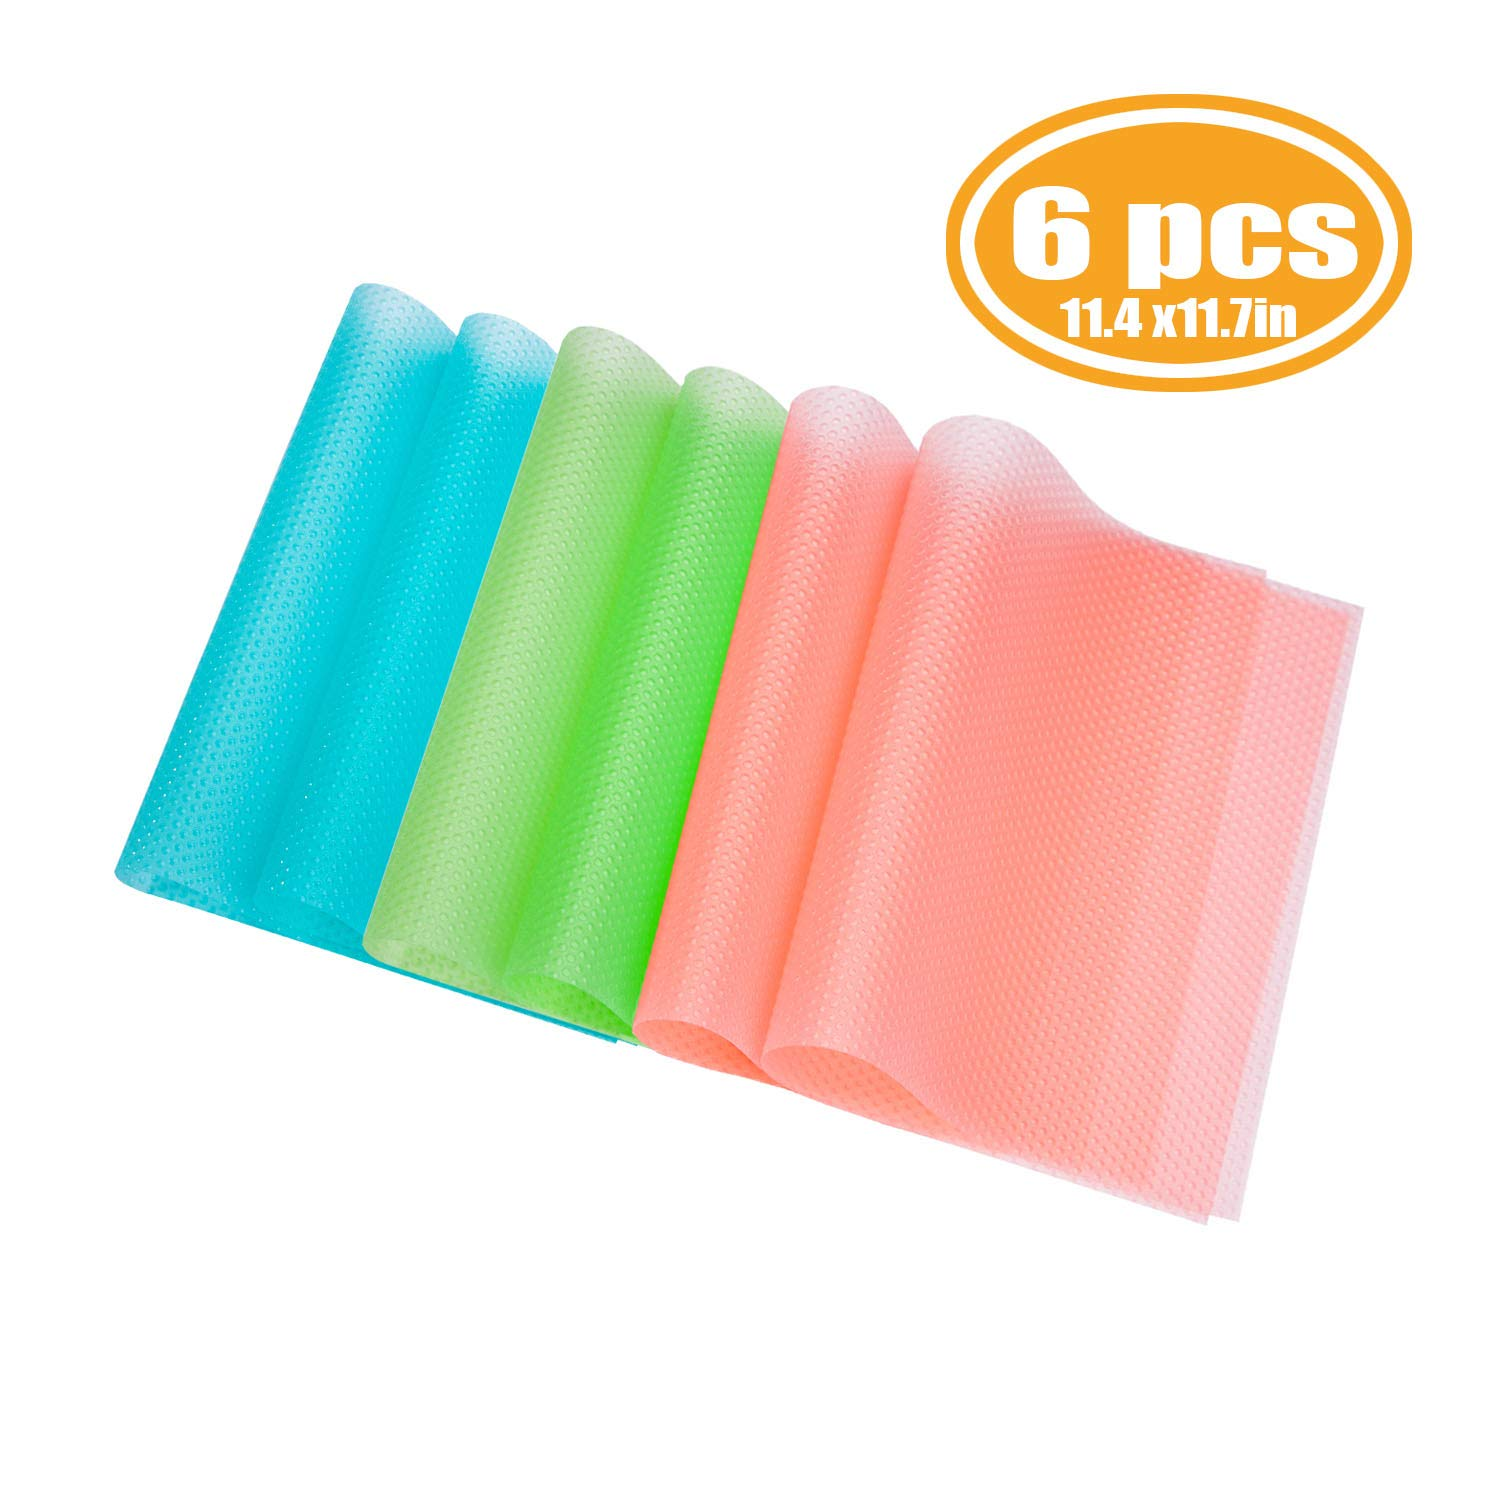 "Fridge Liners Mats Transparent Non-Adhesive - Washable Refrigerator Liner 6/Pack 11.4""x17.7"" EVA Can Be Cut Refrigerator Pads, Placemats Washable(2 Blue/2 Green/2 Pink)"